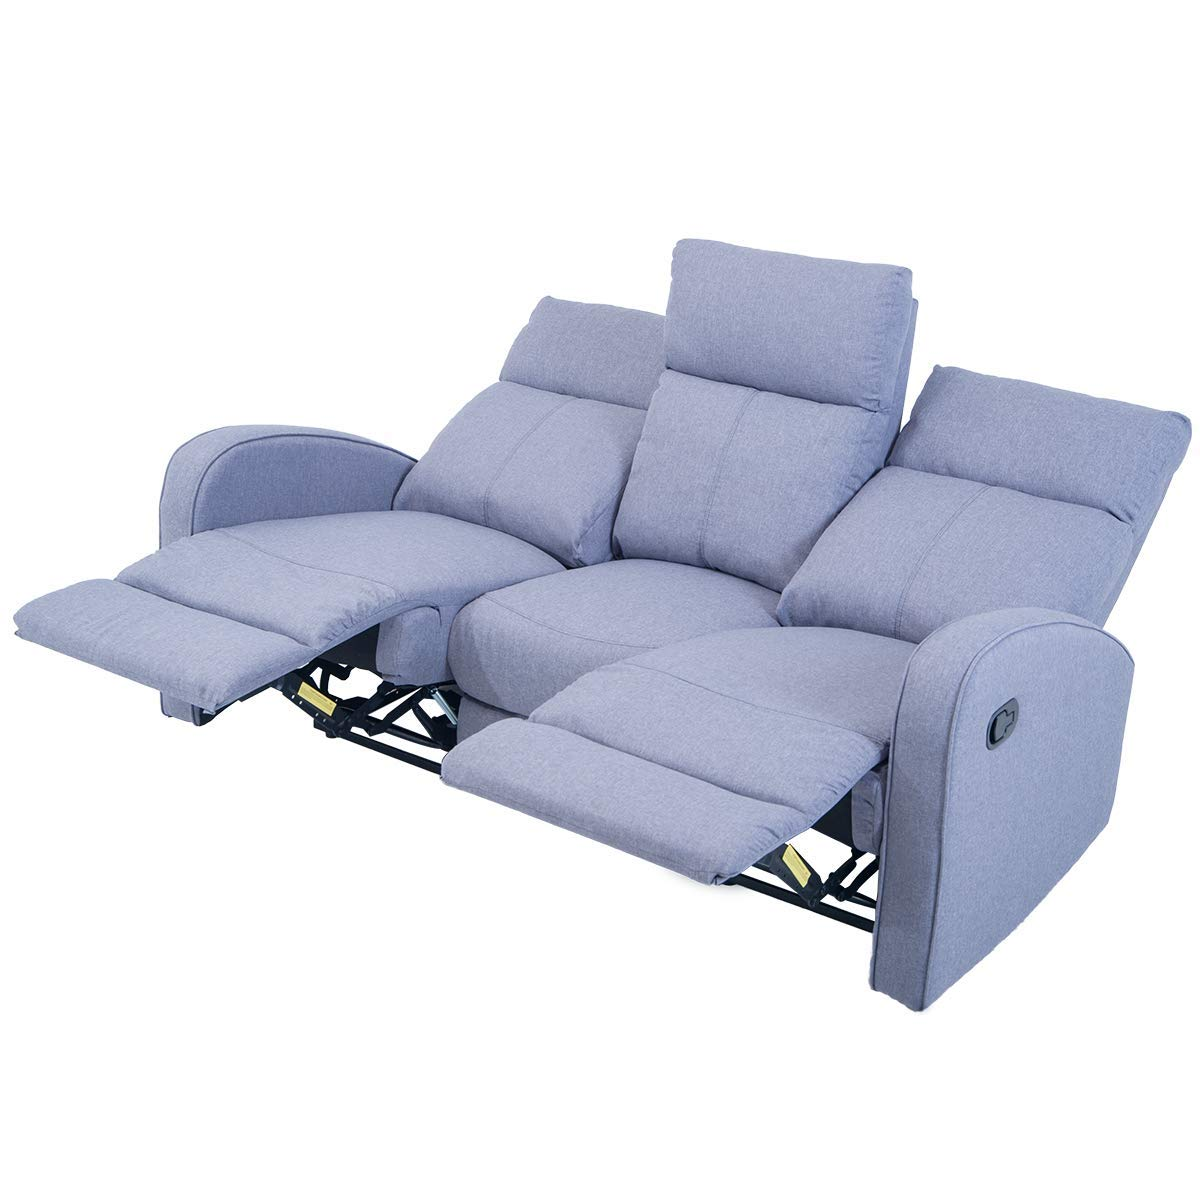 Harper Bright Designs Sofa Grey Fabric Reclining Chair Living Room Sectional Furniture Three Seater